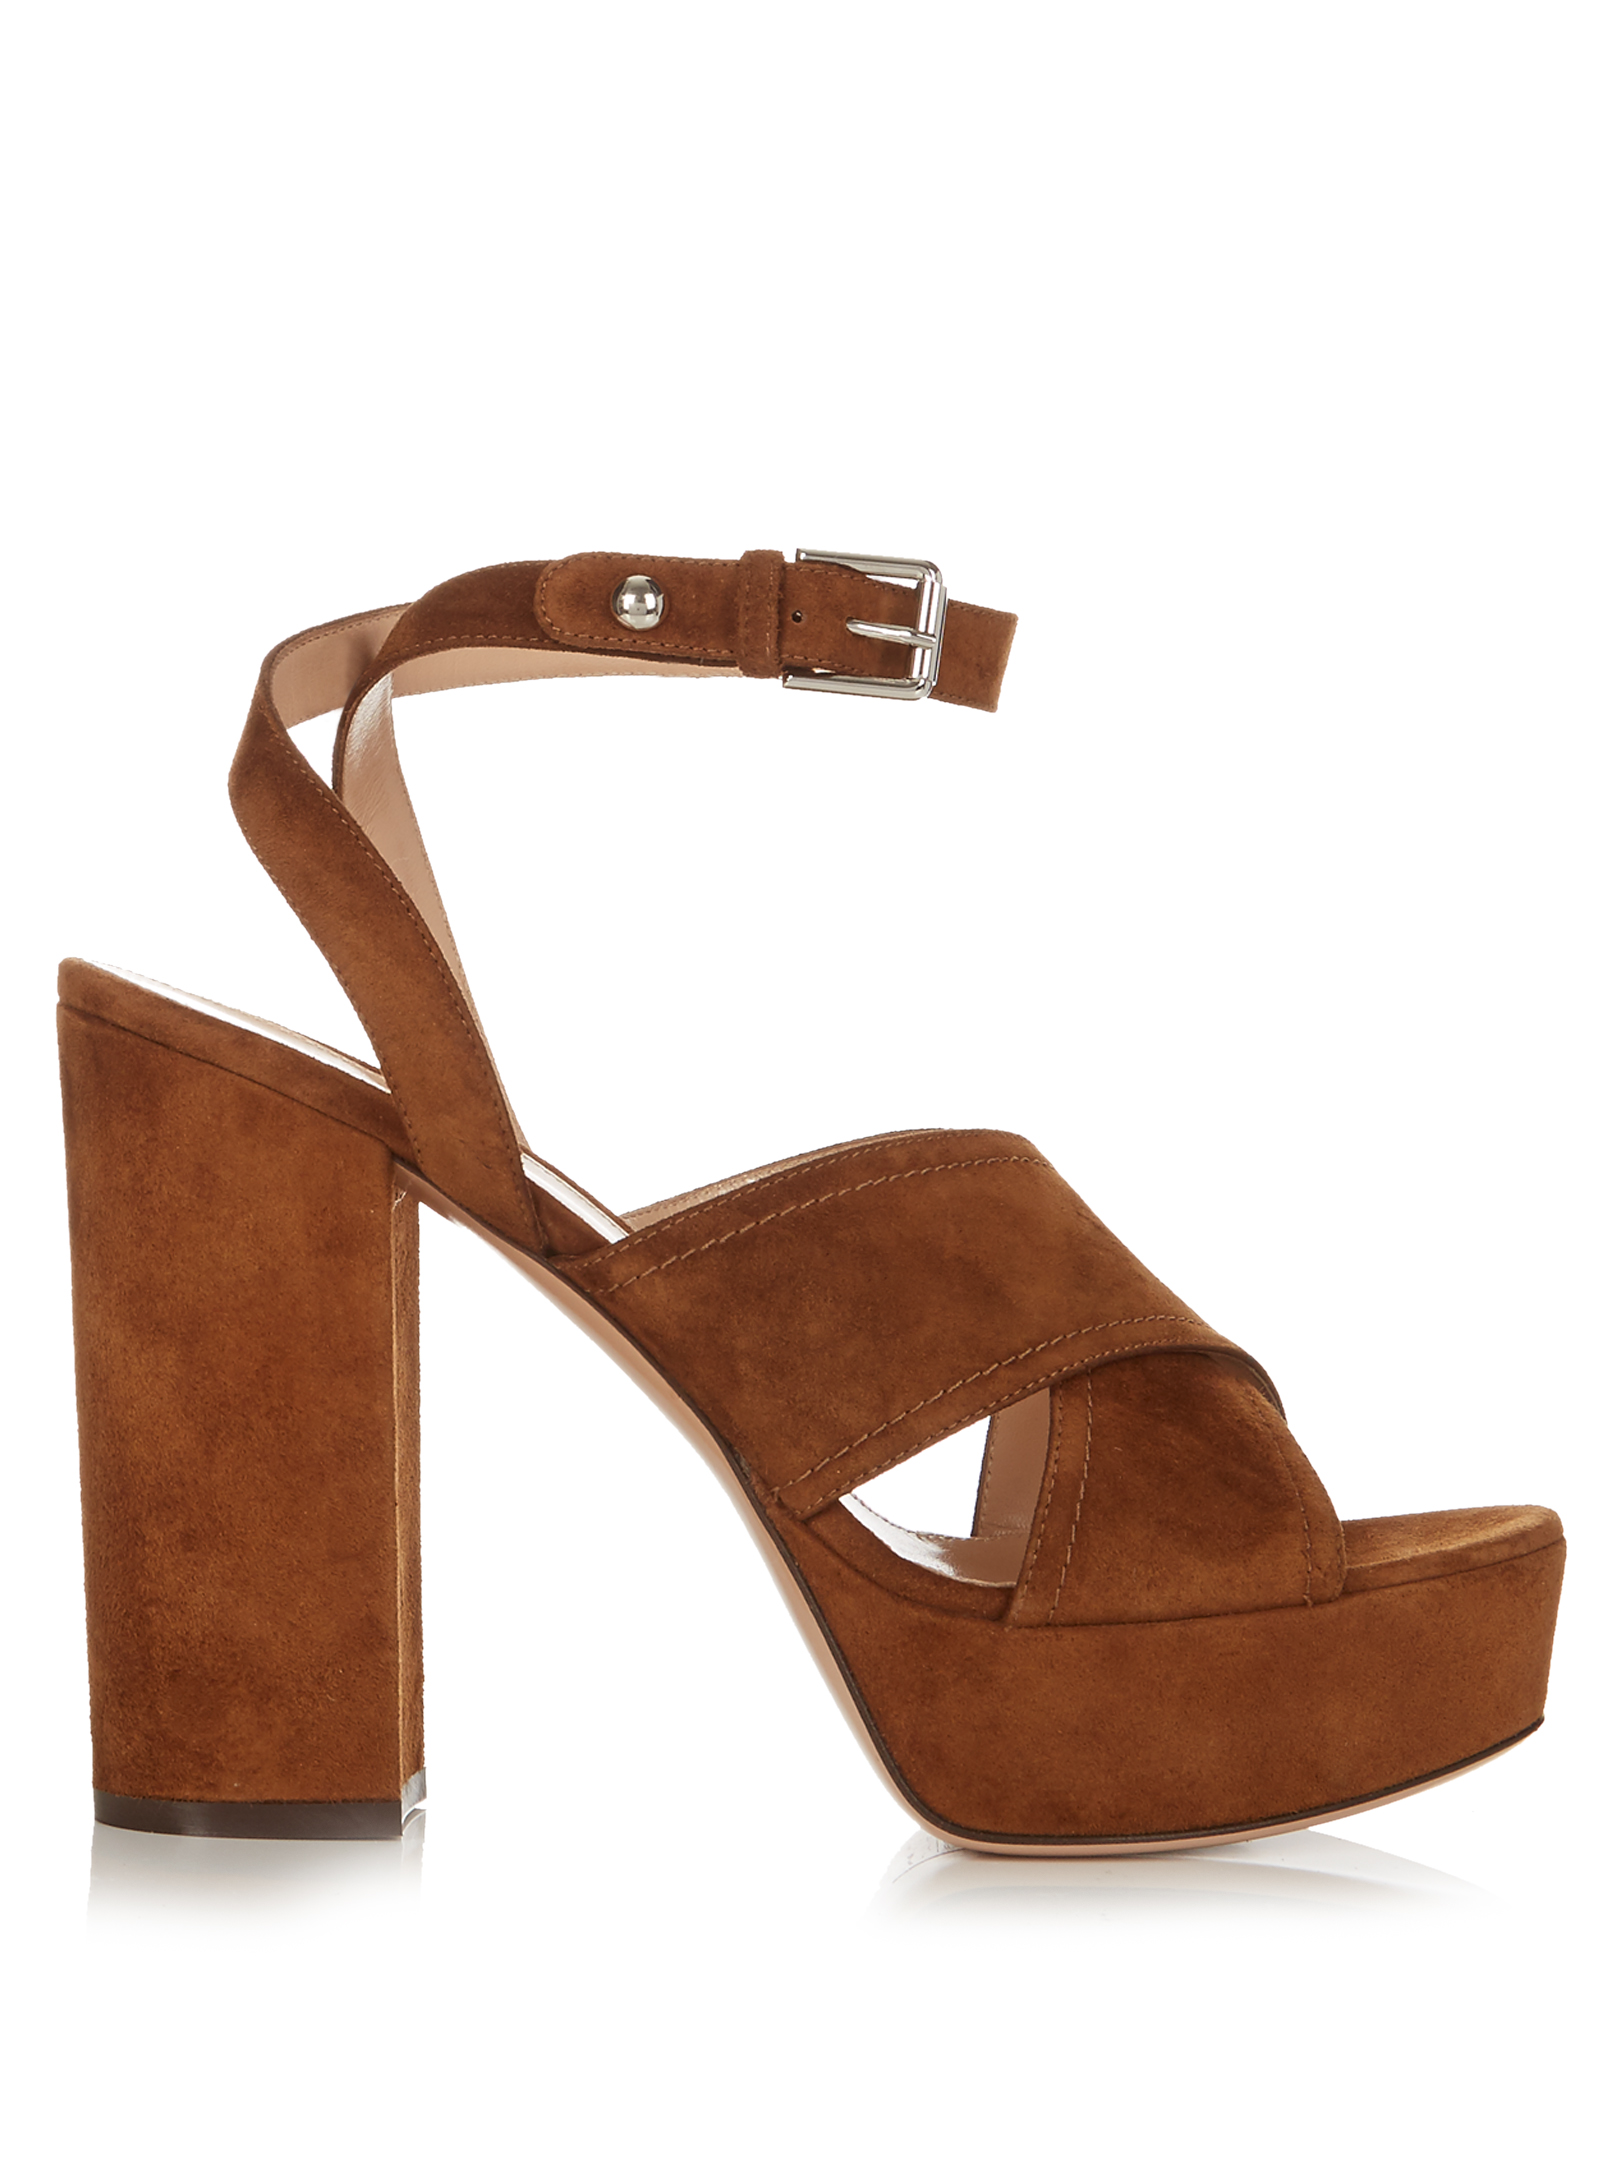 Gianvito Rossi   Suzie Suede Platform Sandals , £327 (used to be £545) -  the most comfortable shoes I have ever worn no matter how high the heel, worth the investment and this particular style can be worn in all seasons (and would work wonders with the See By Chloé flared jeans for example...)